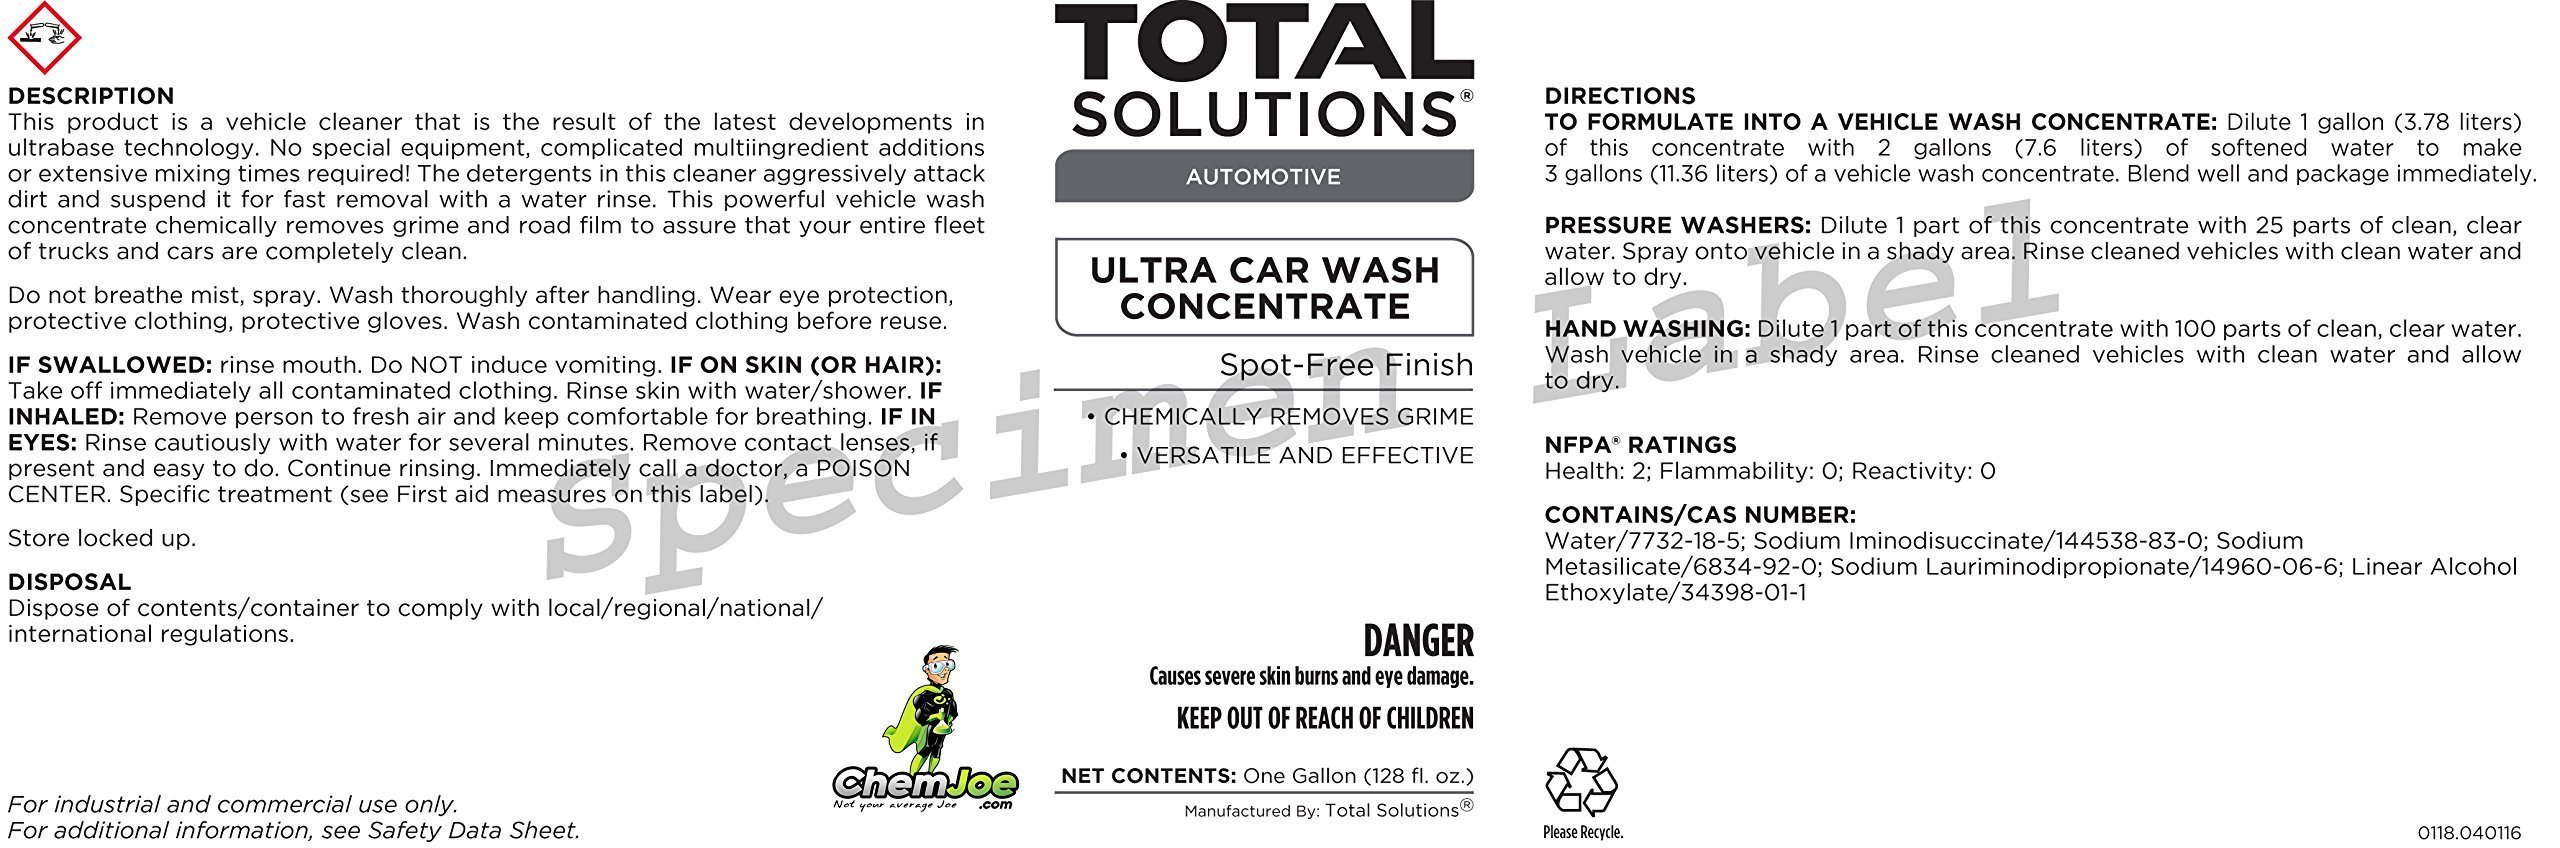 ChemJoe Ultra Car Wash Concentrate all types of vehicles. Heavy Road Grime Great for Big Rig Trucks. 25 to 1 Dilute Pressure Washer. (1 Gallon) by ChemJoe (Image #2)